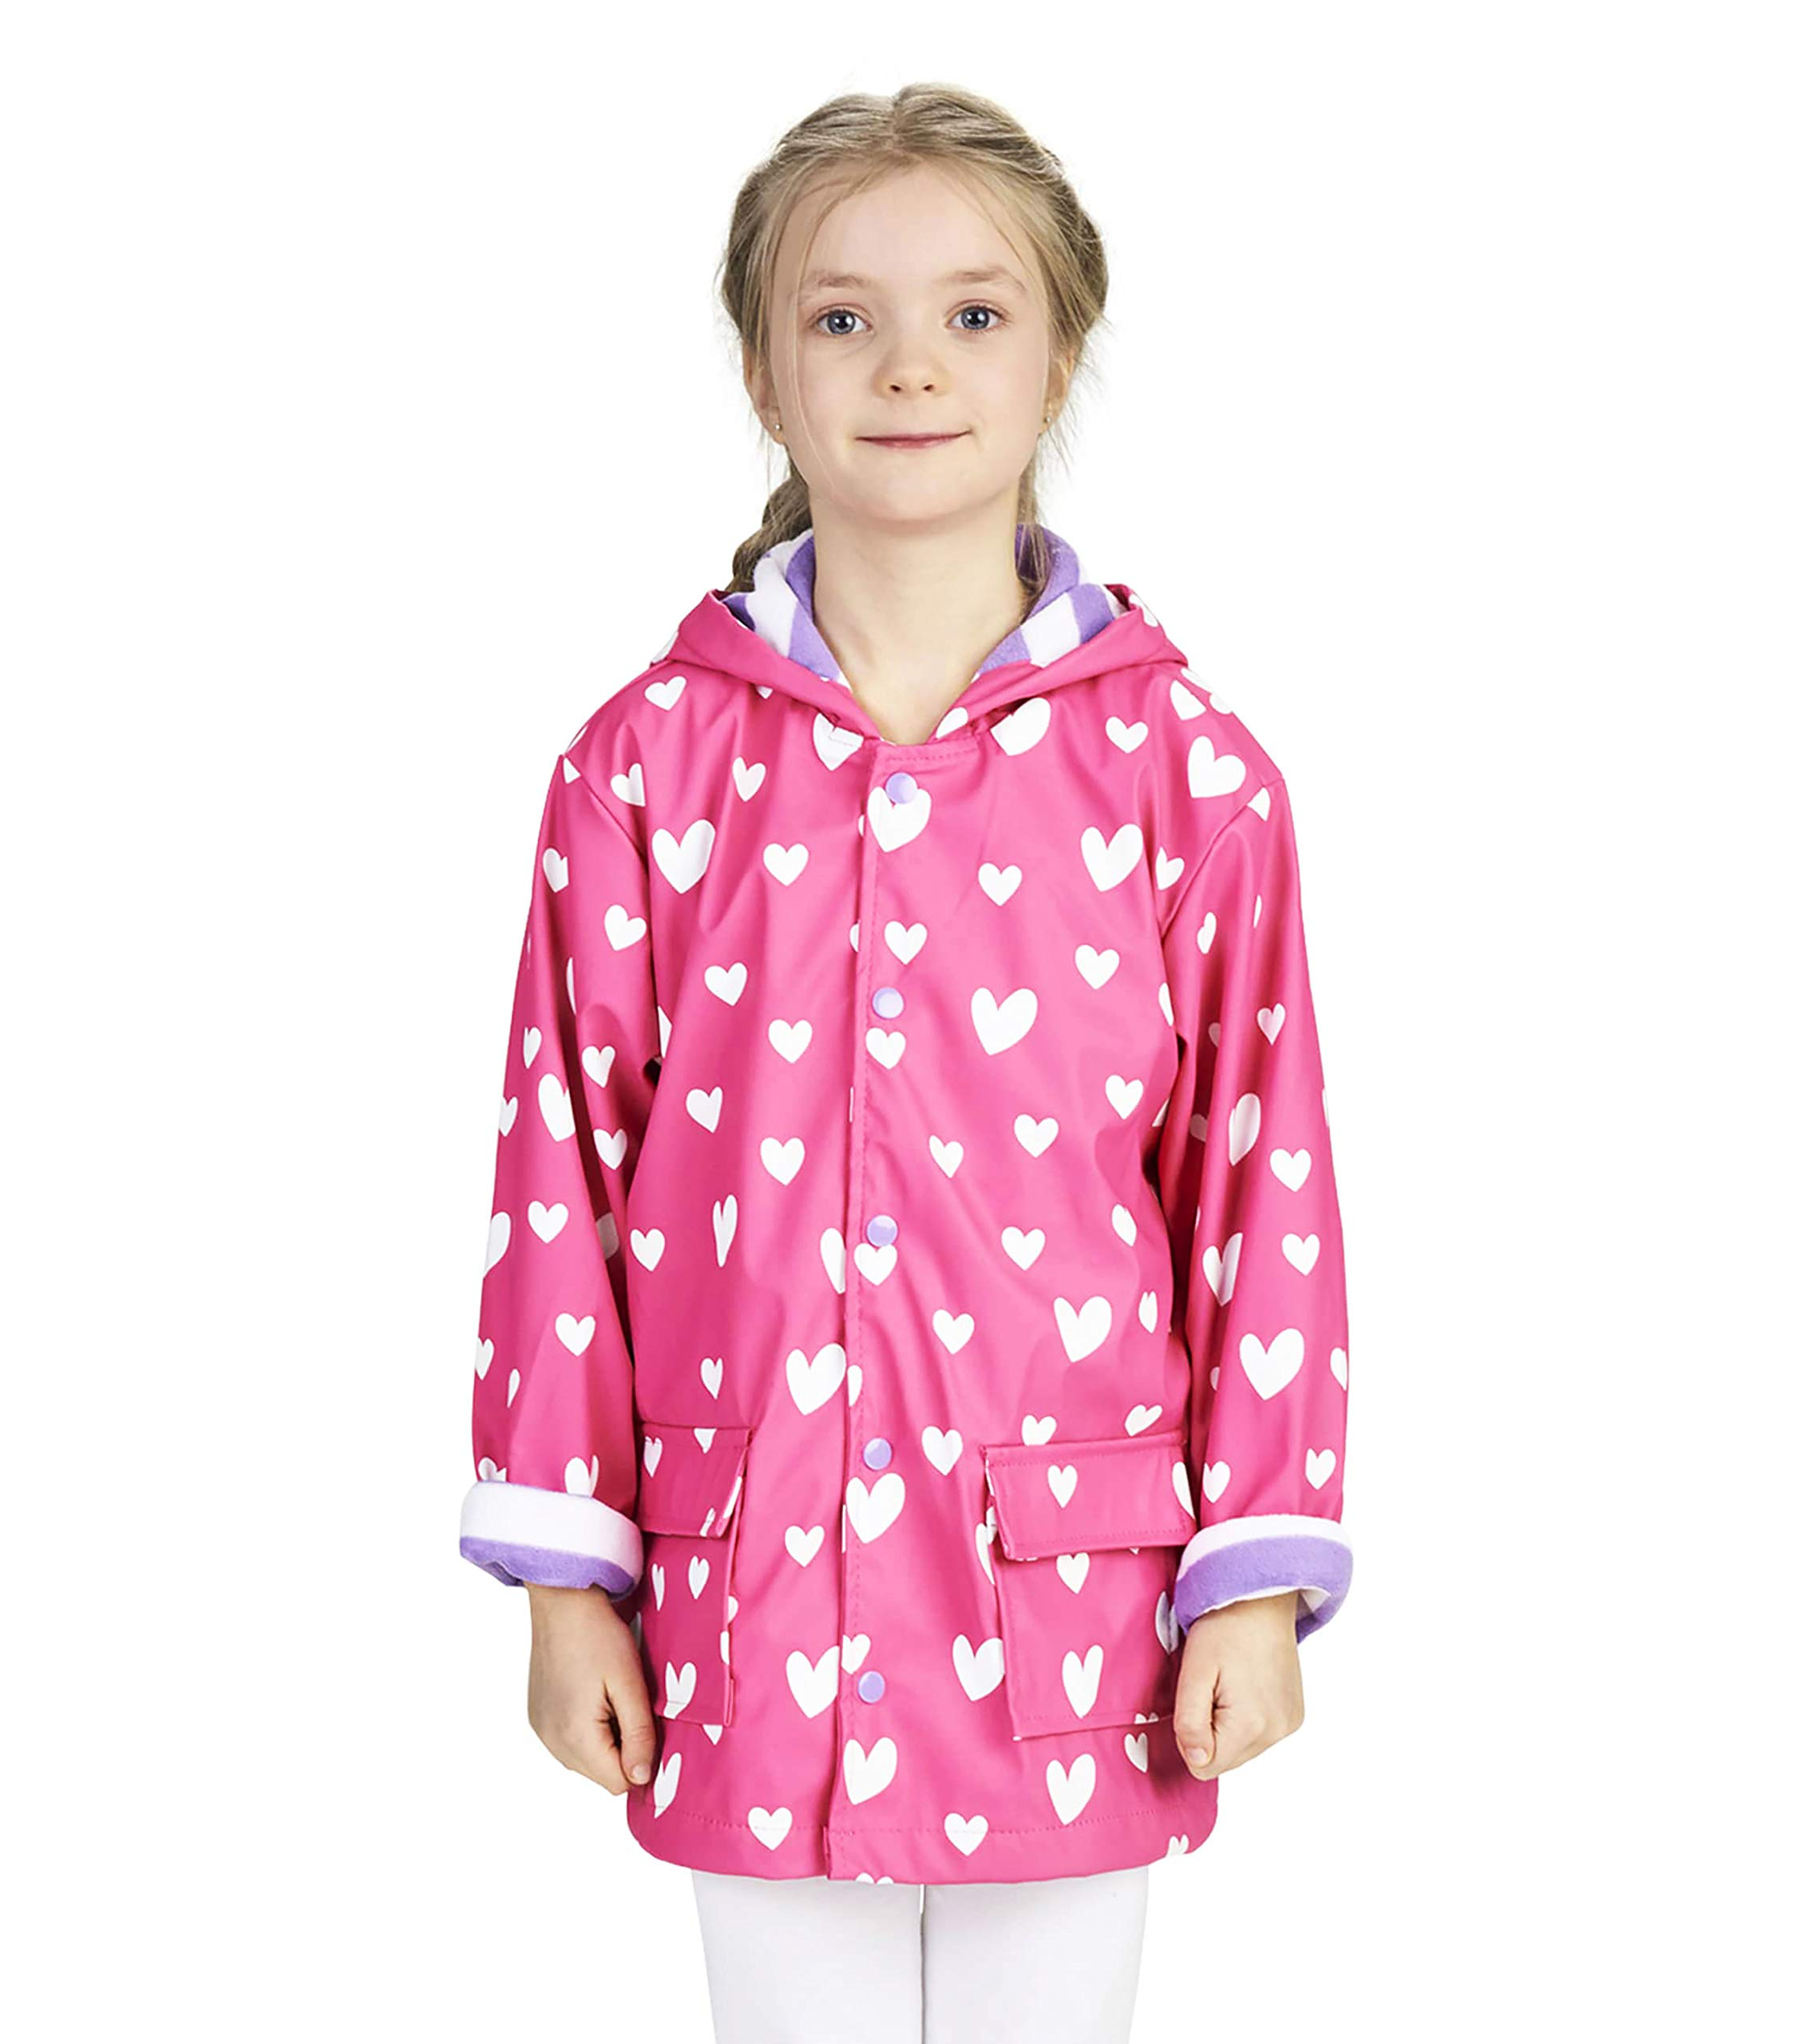 Hatley Girls' Big Printed Raincoats, Color Changing Sweethearts 12